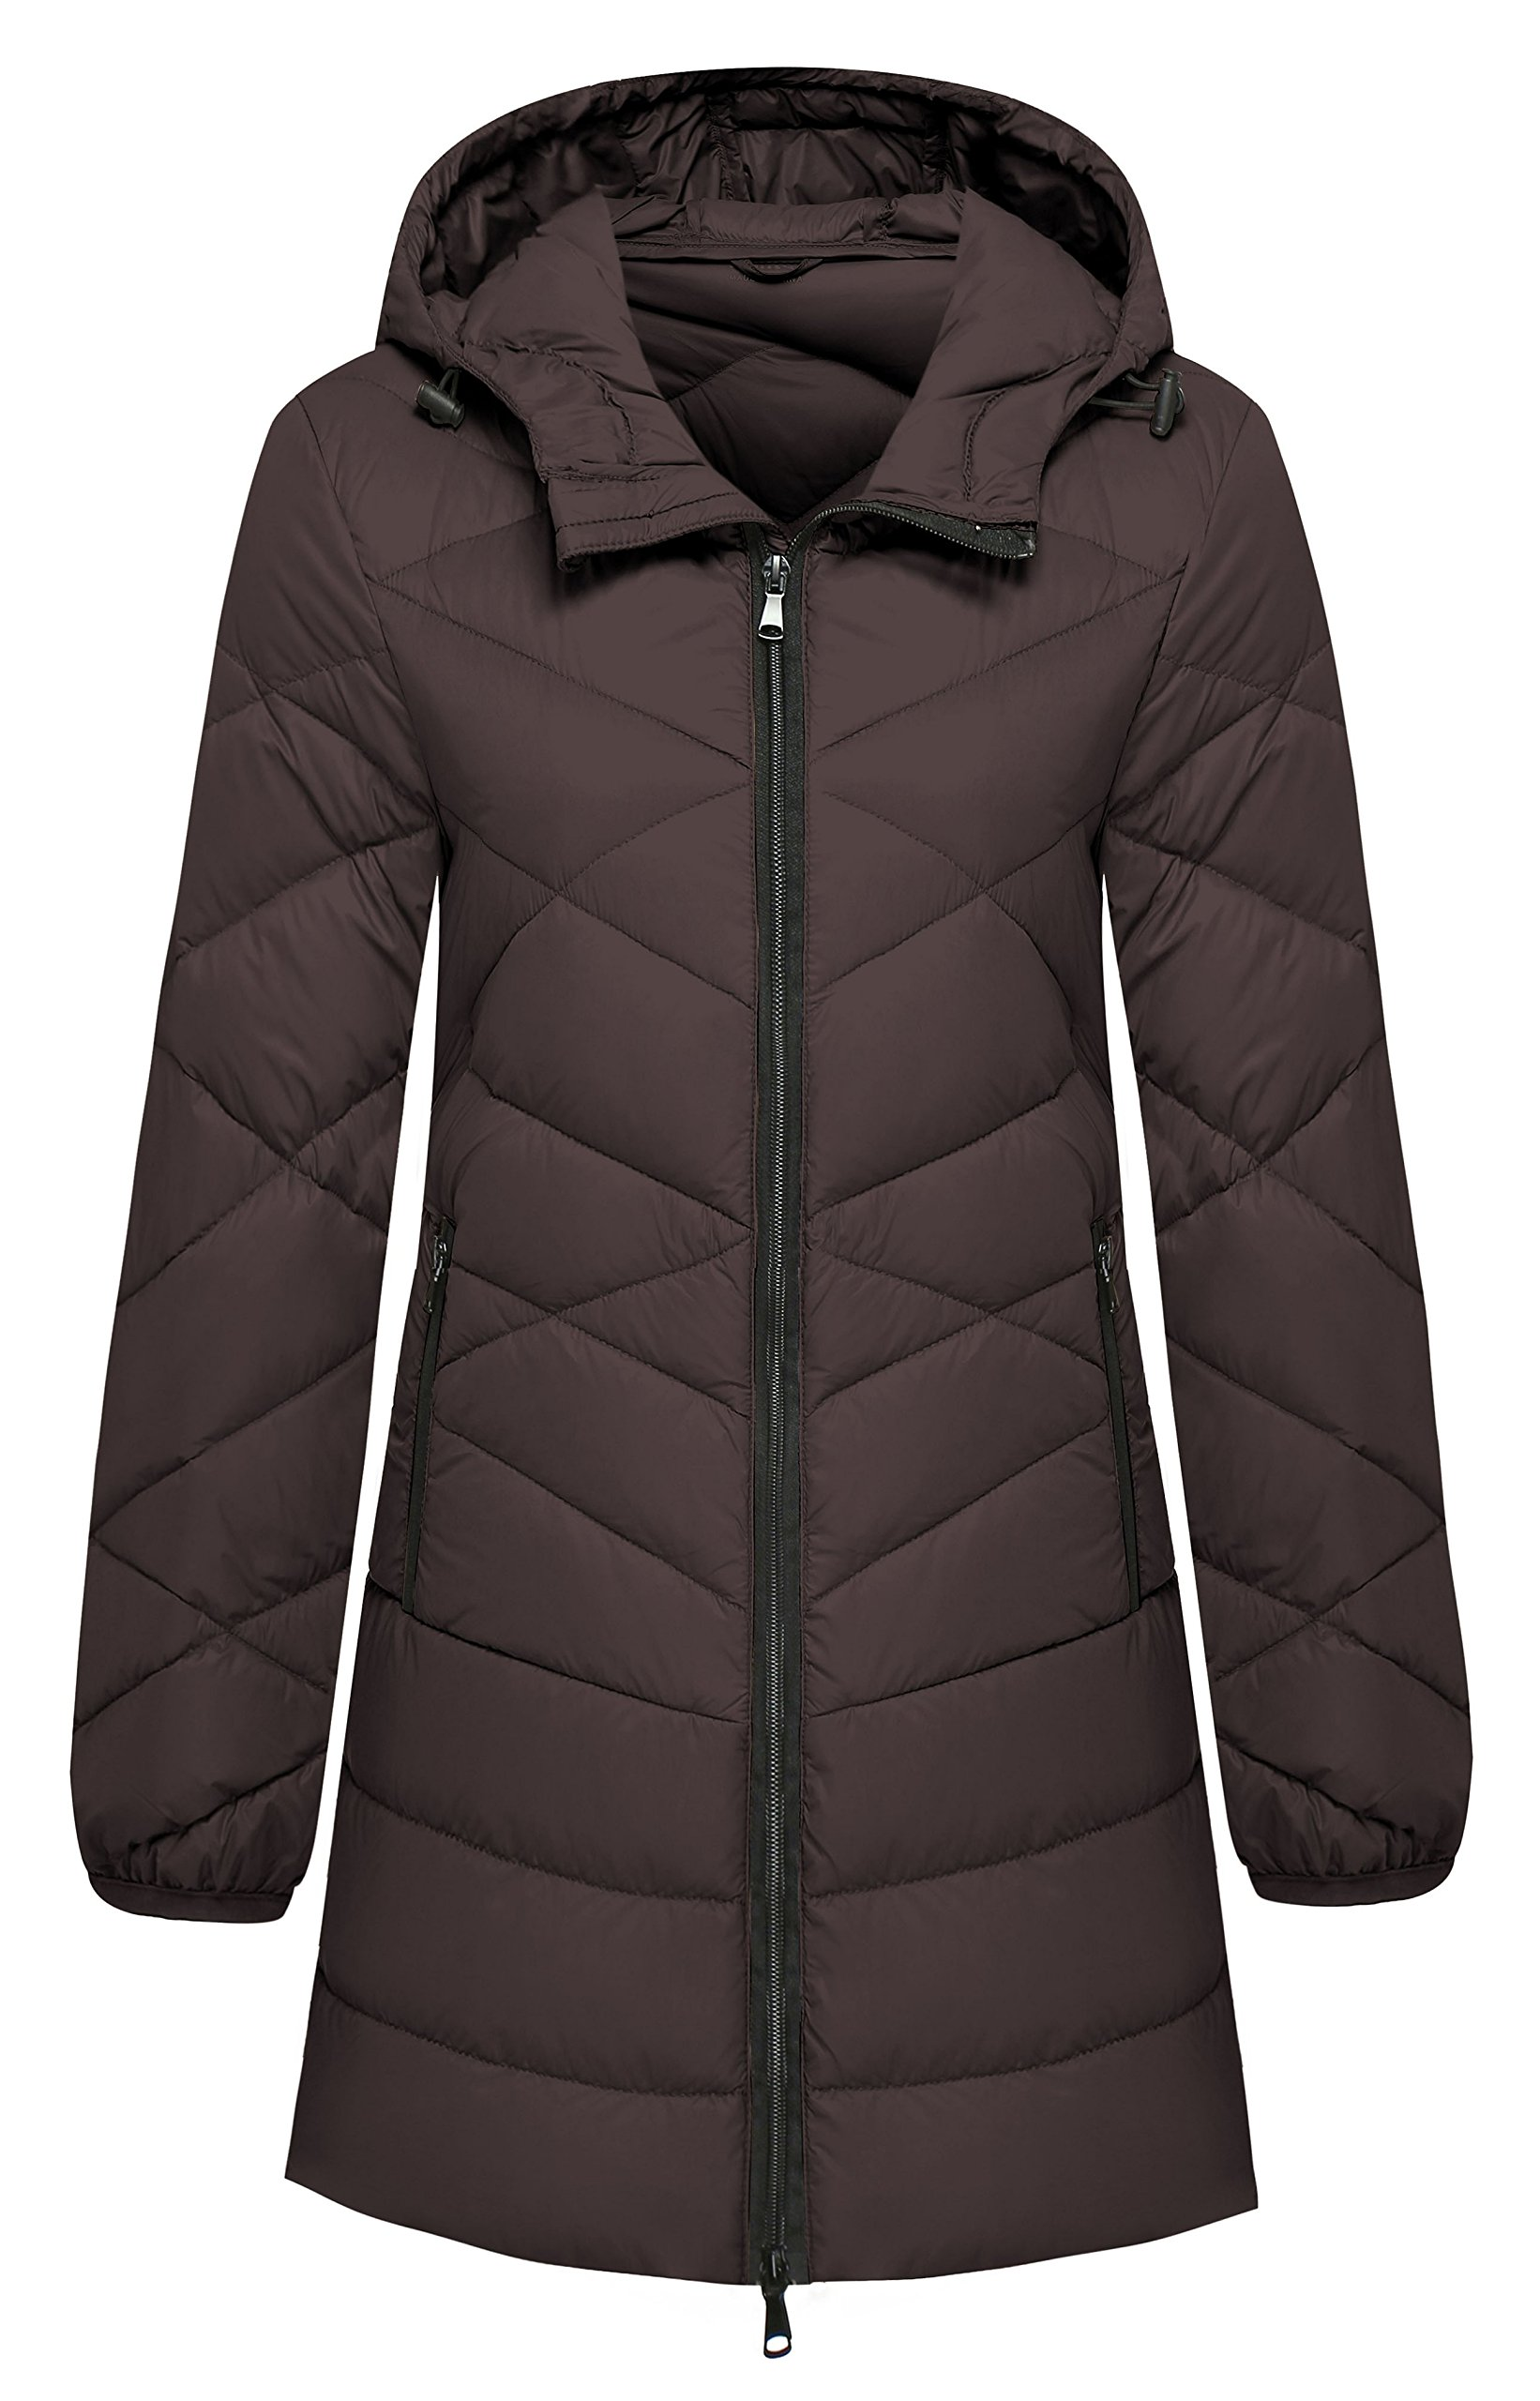 Wantdo Women's Hooded Packable Ultra Light Weight Lengthed Down Jacket, Coffee, Large